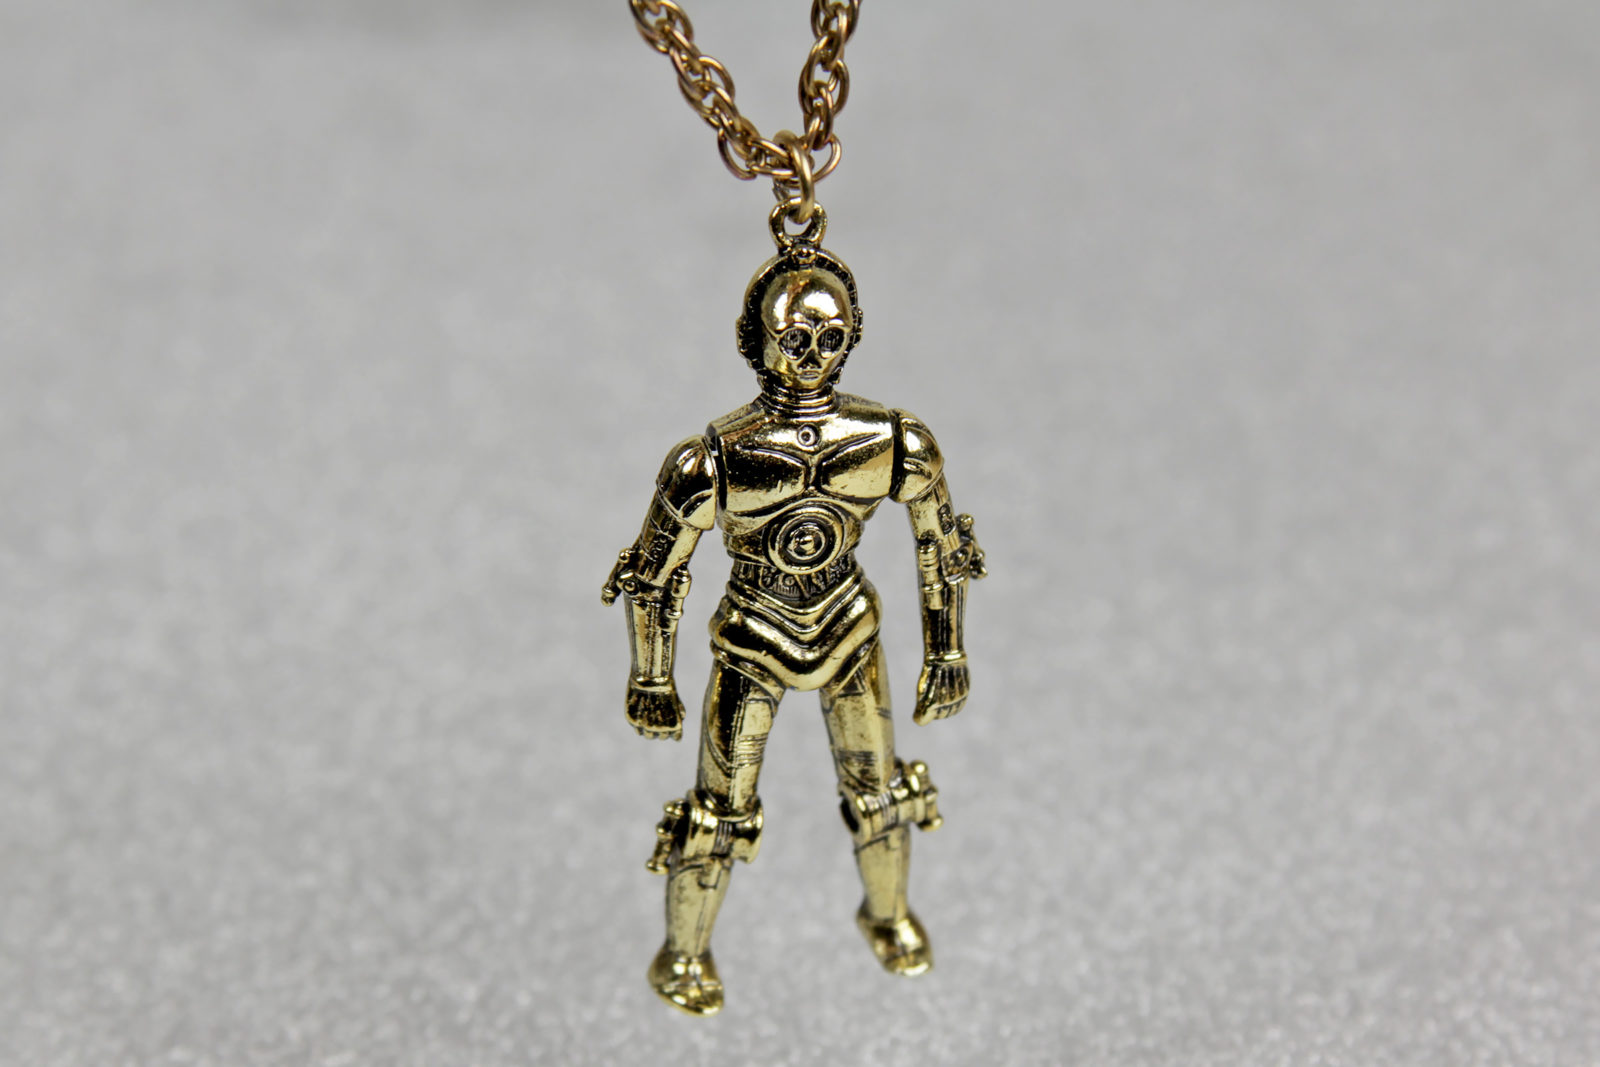 Vintage C-3PO Necklace